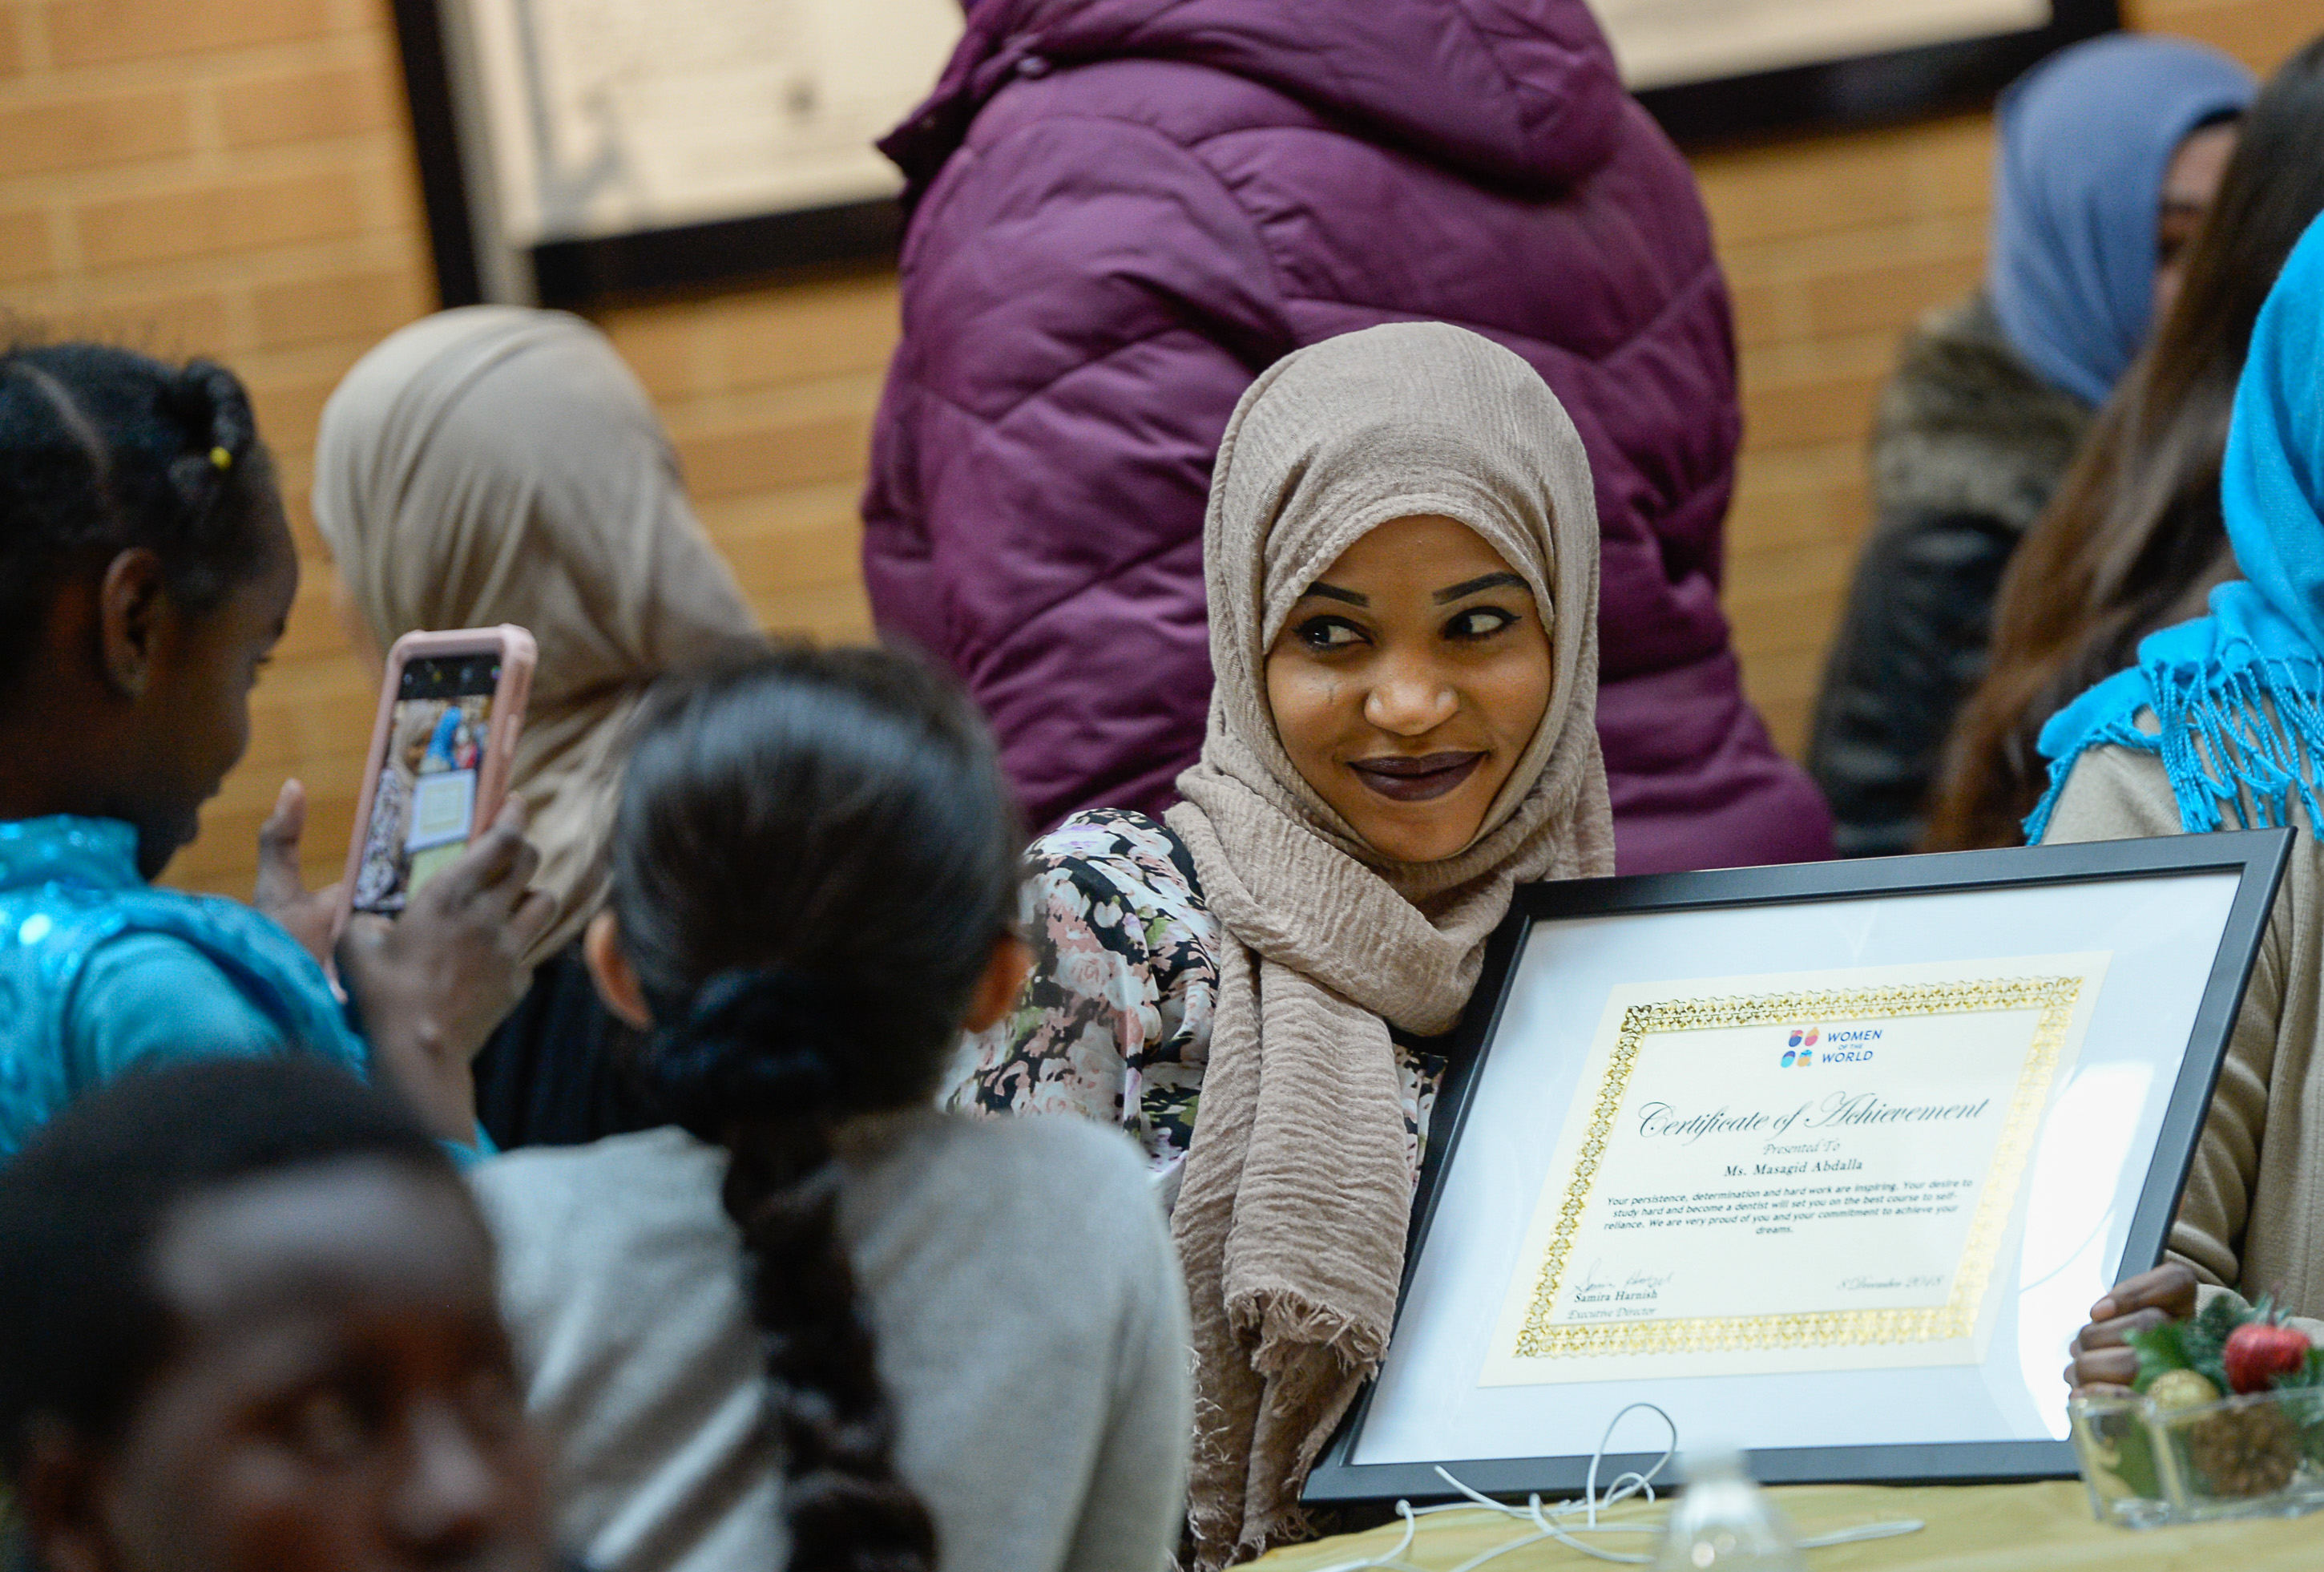 Better than an Oscar: Refugee women in Utah recognized for self-reliance and individual accomplishments